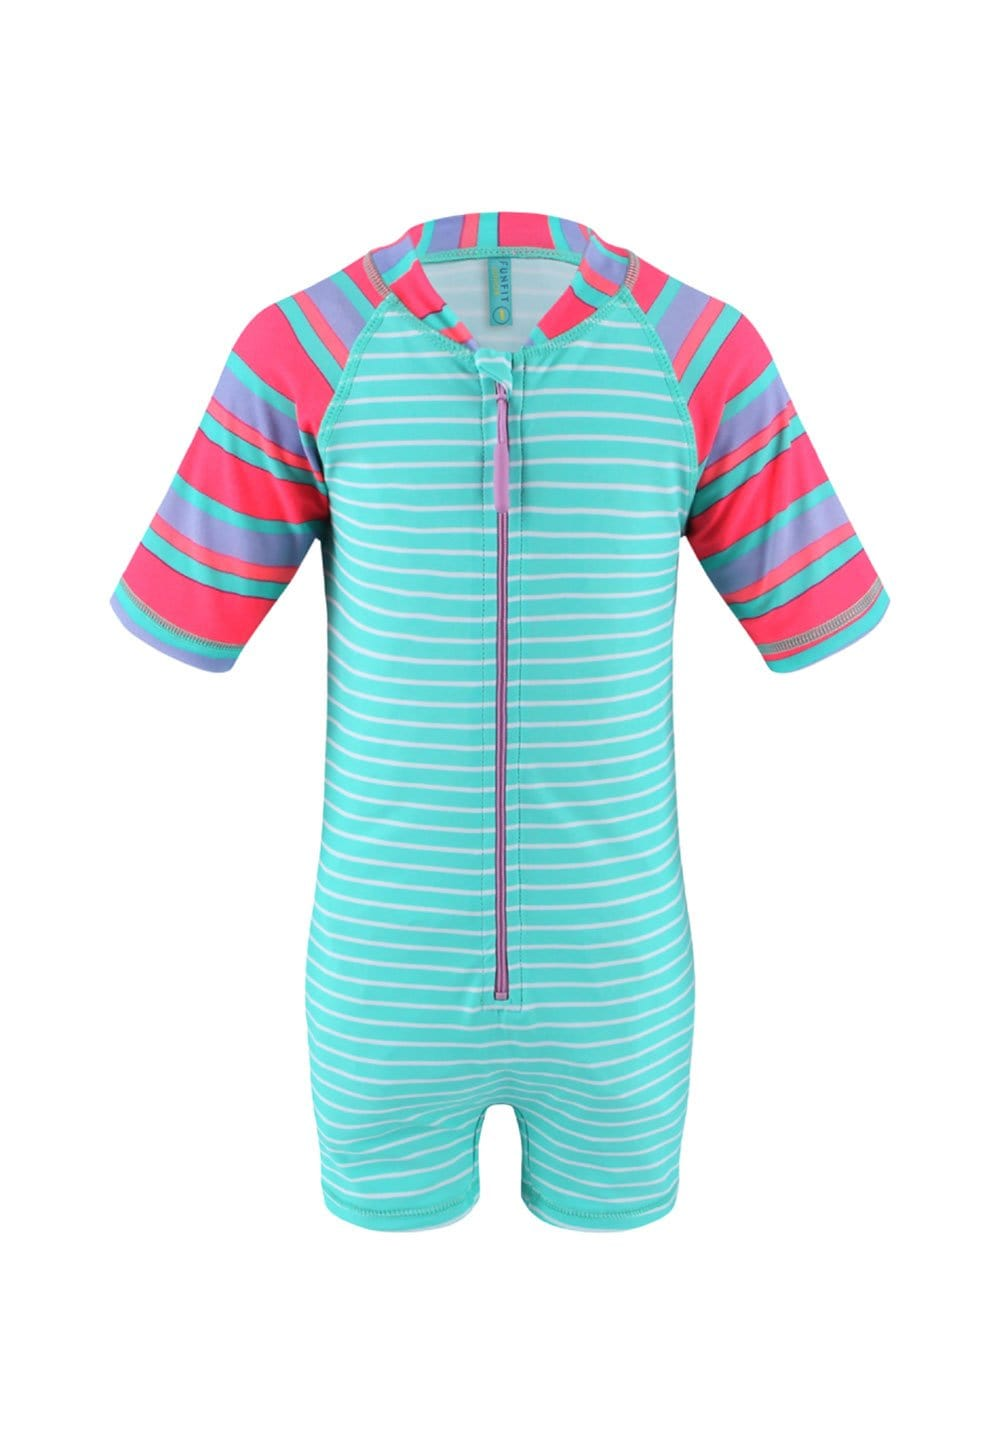 UPF50+ Junior Sunsuit Half Sleeve (Unisex) in Contrast Bubblegum Print